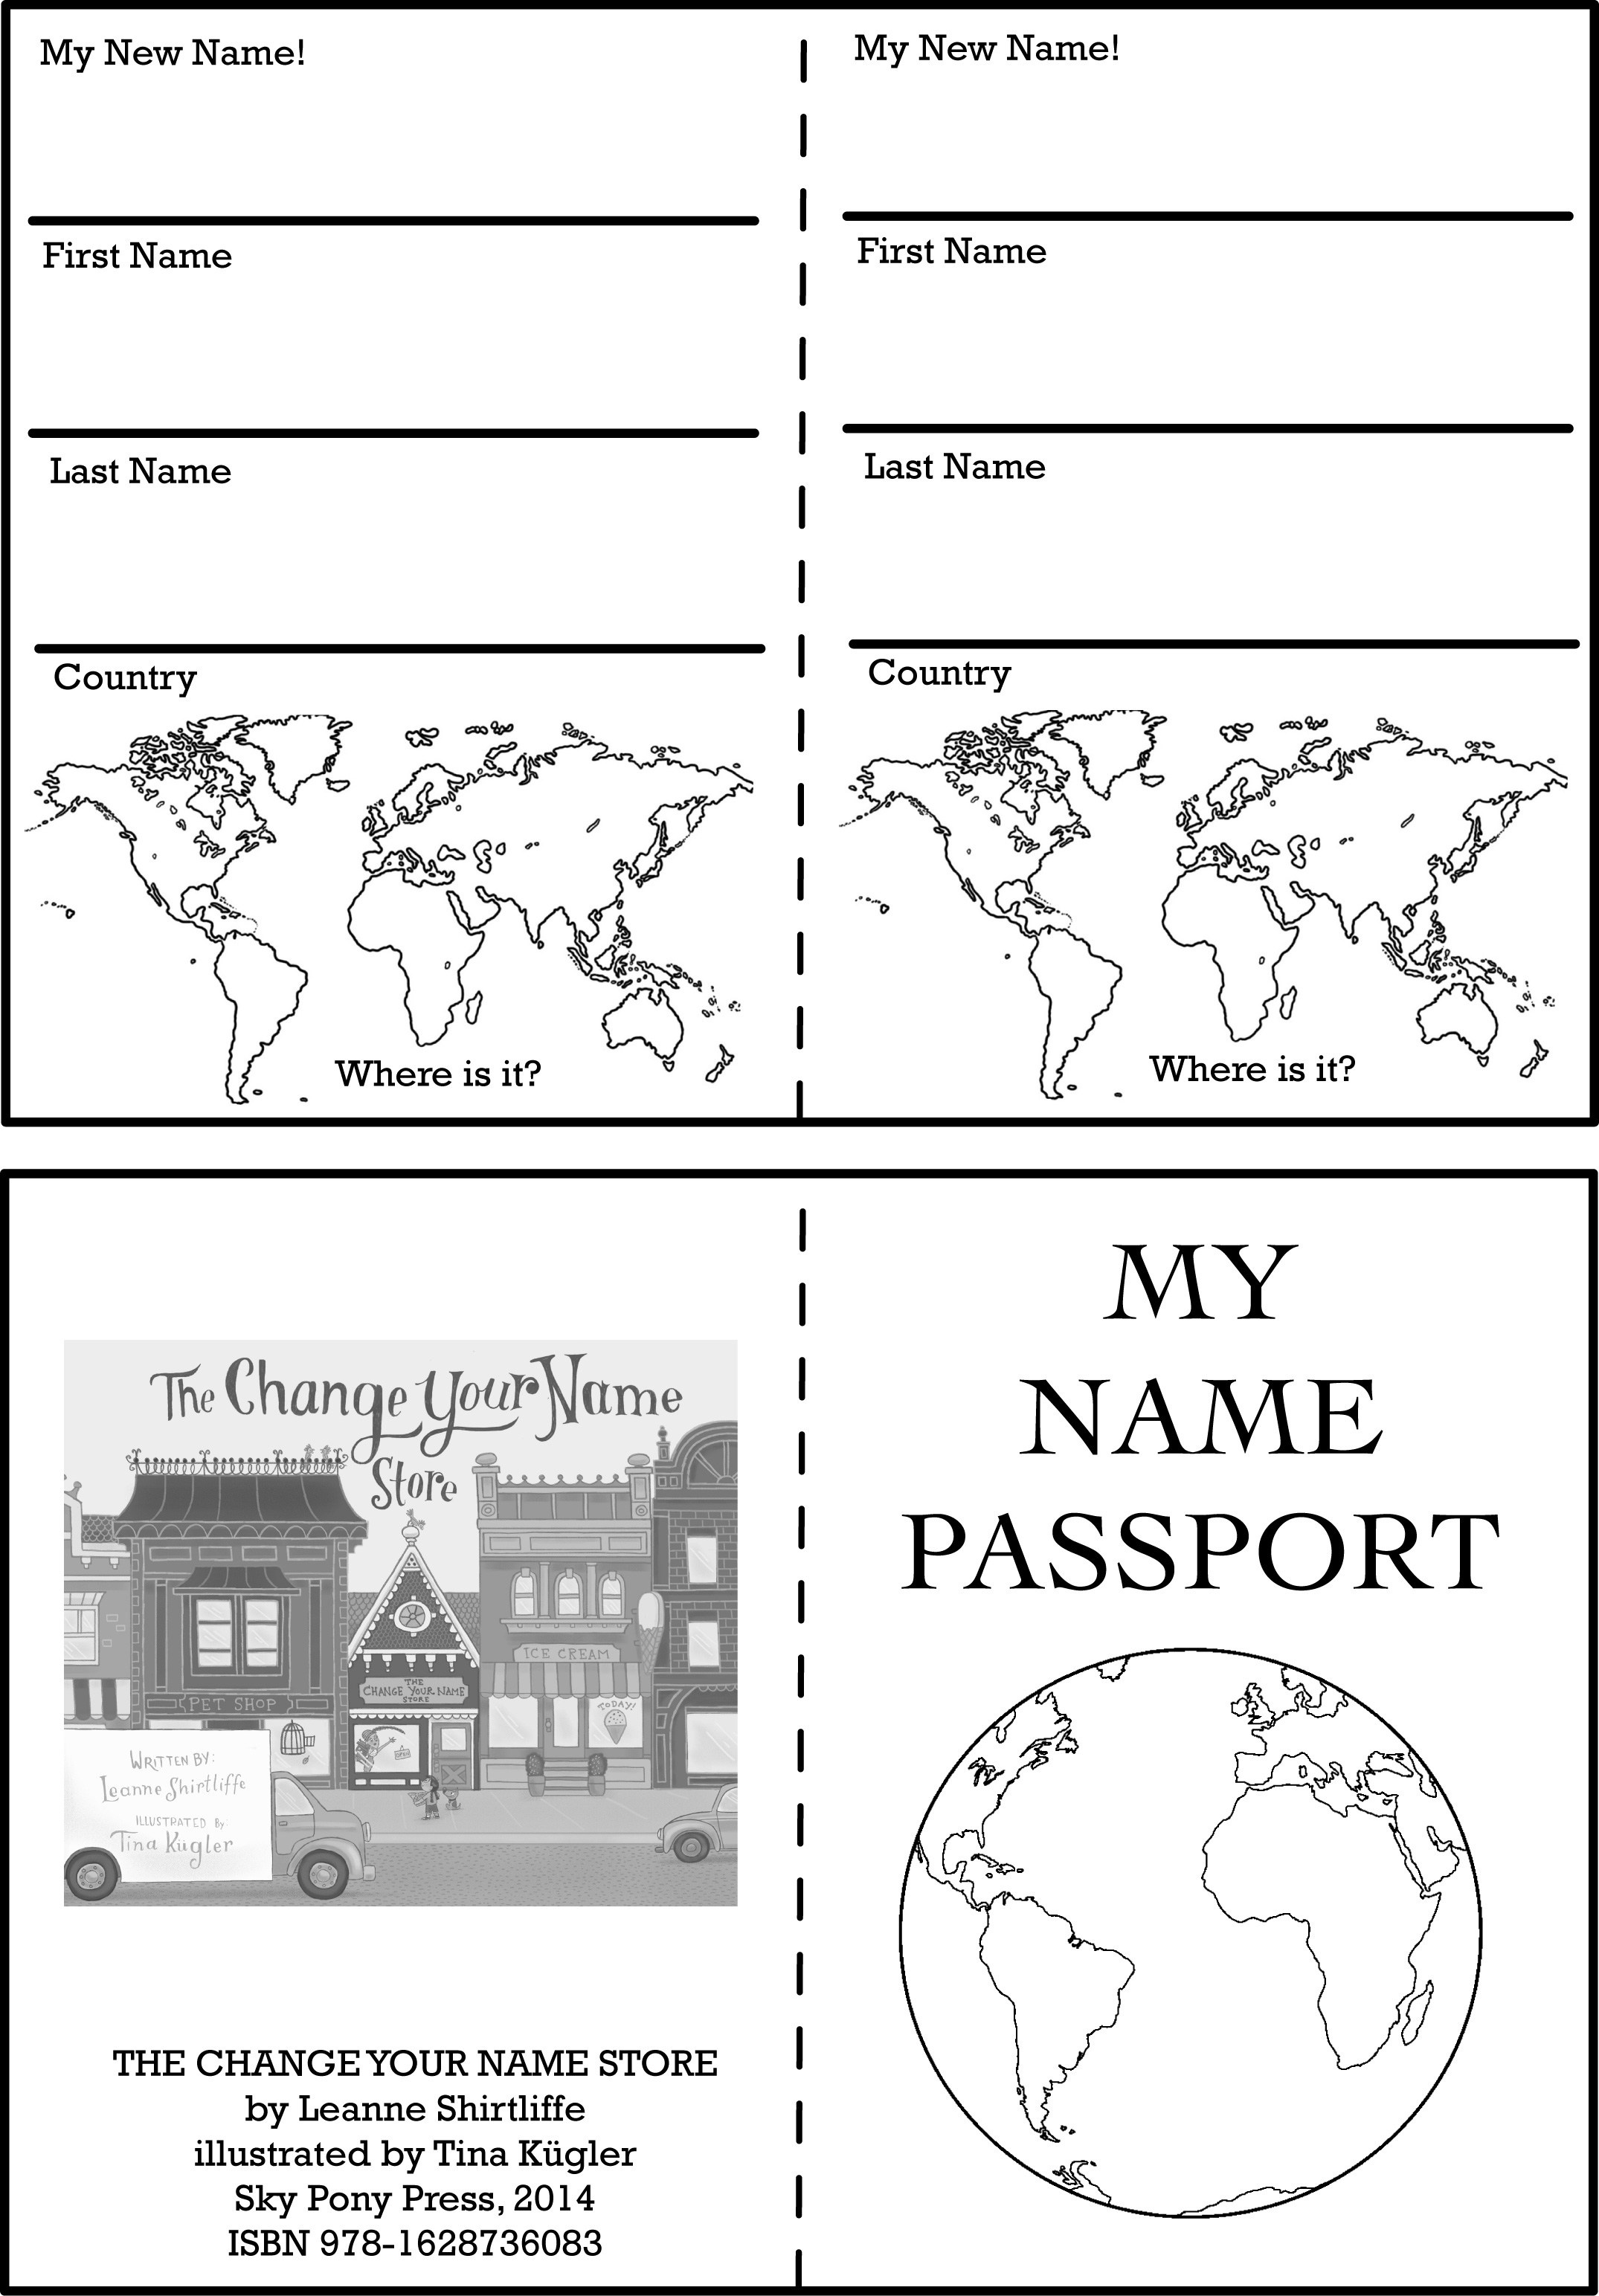 Blank Passport Template. Passport Symbol Coloring Page With Their - Free Printable Passport Template